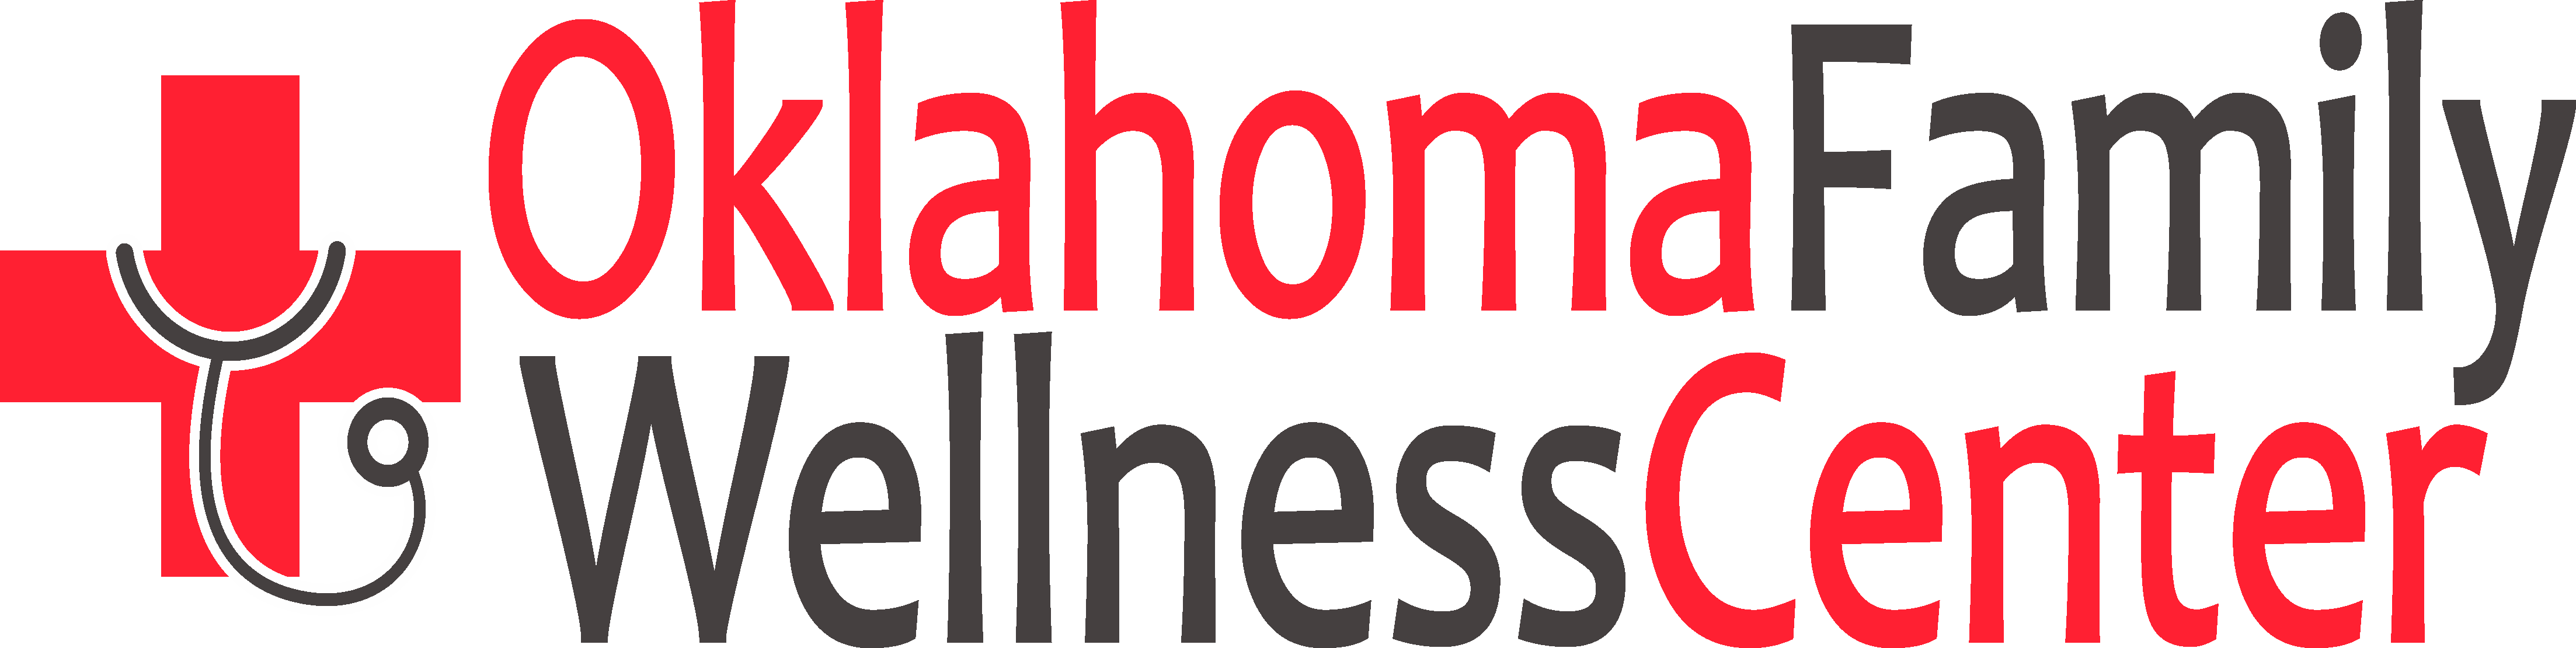 Oklahoma Family Wellness Center